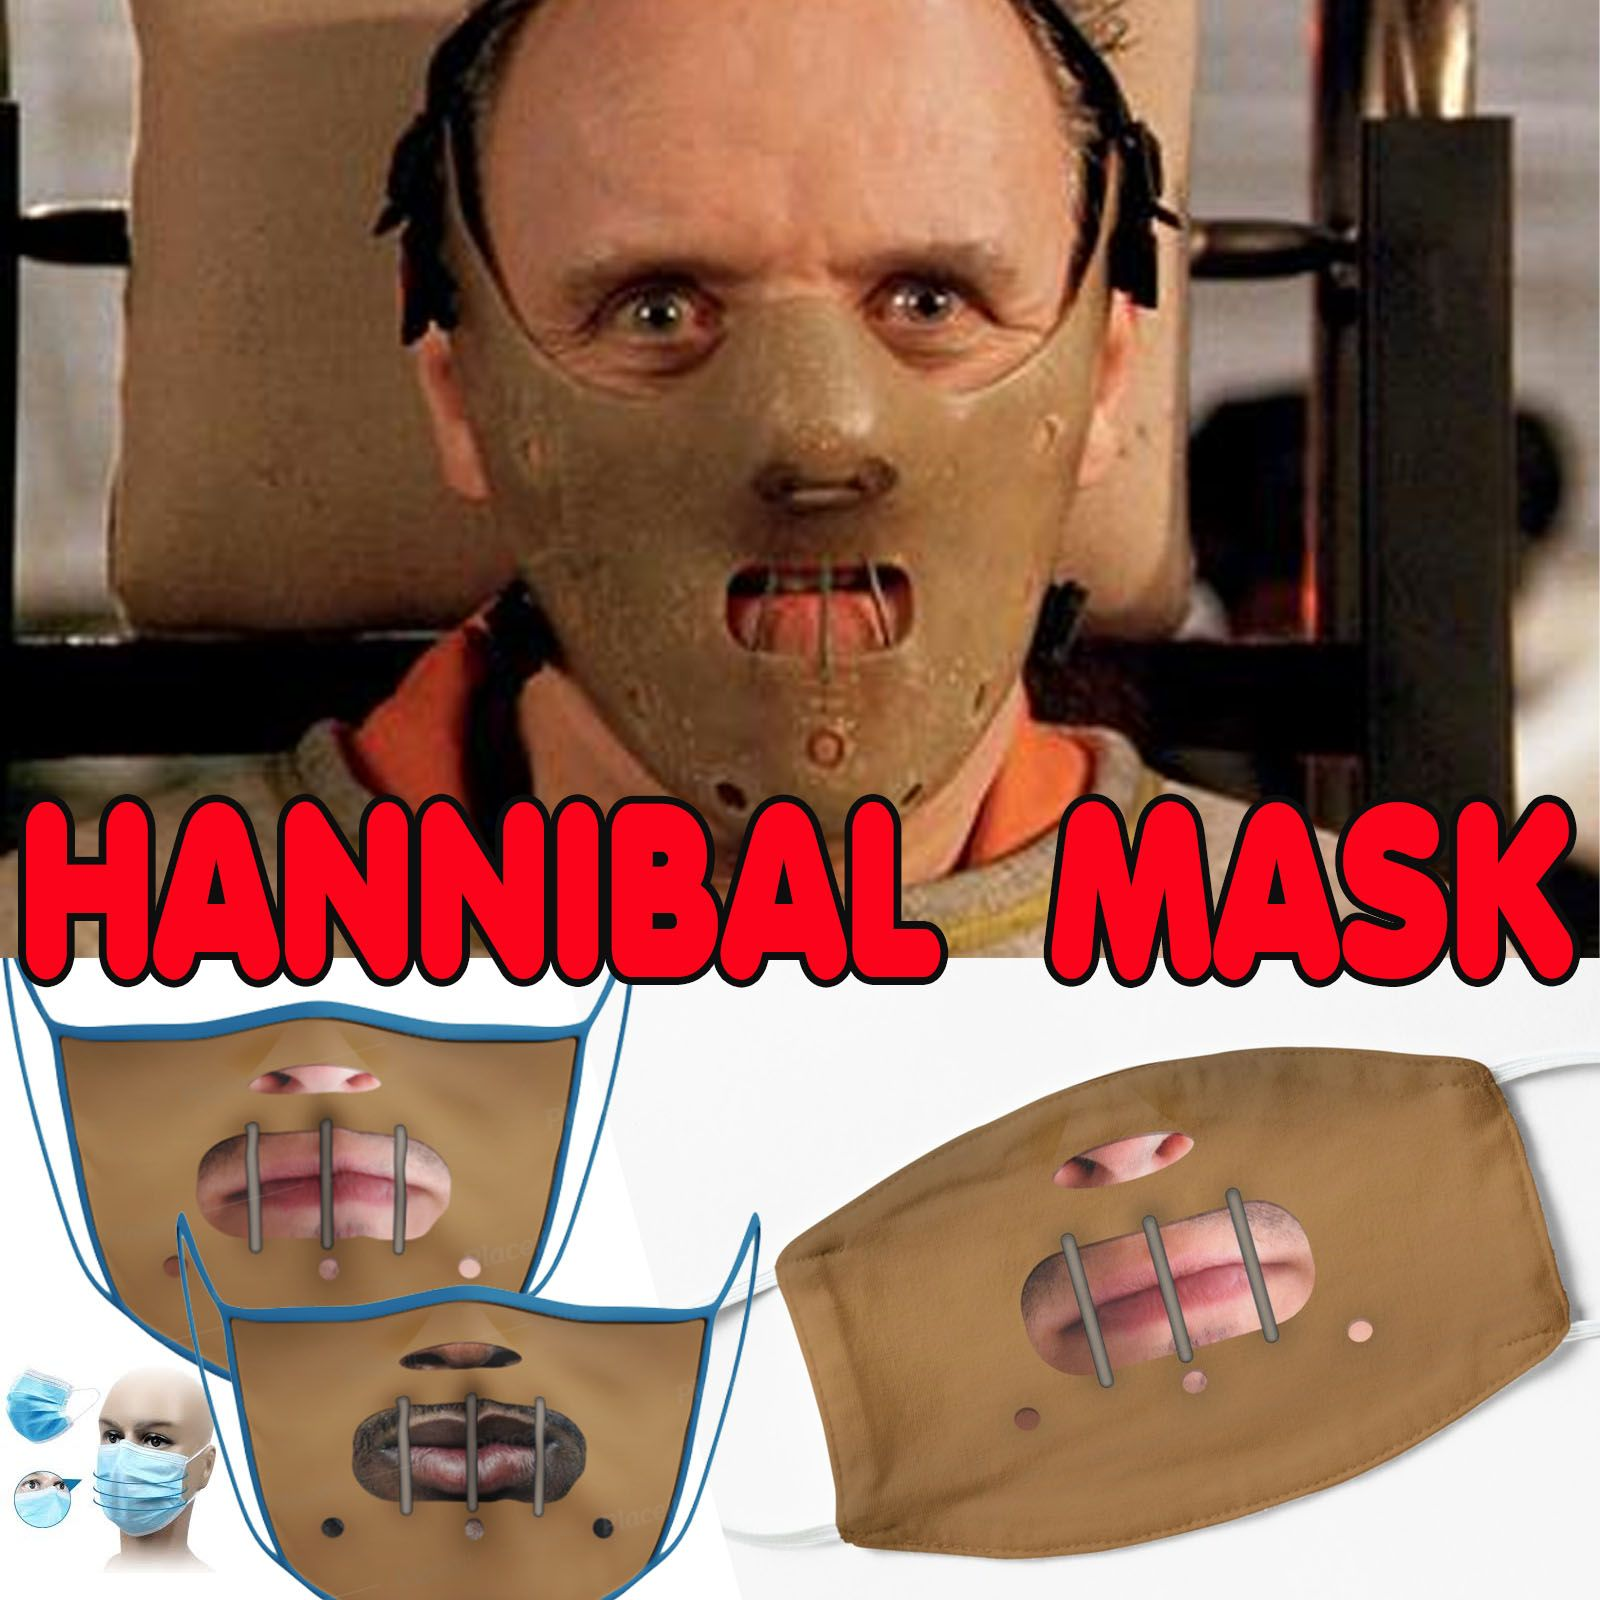 Funny Horror Mask 1 Gift Mask By Davide174 Hannibal Mask Funny Horror Hannibal Lecter Mask Mask jason voorhees vs hannibal lecter !!! funny horror mask 1 gift mask by